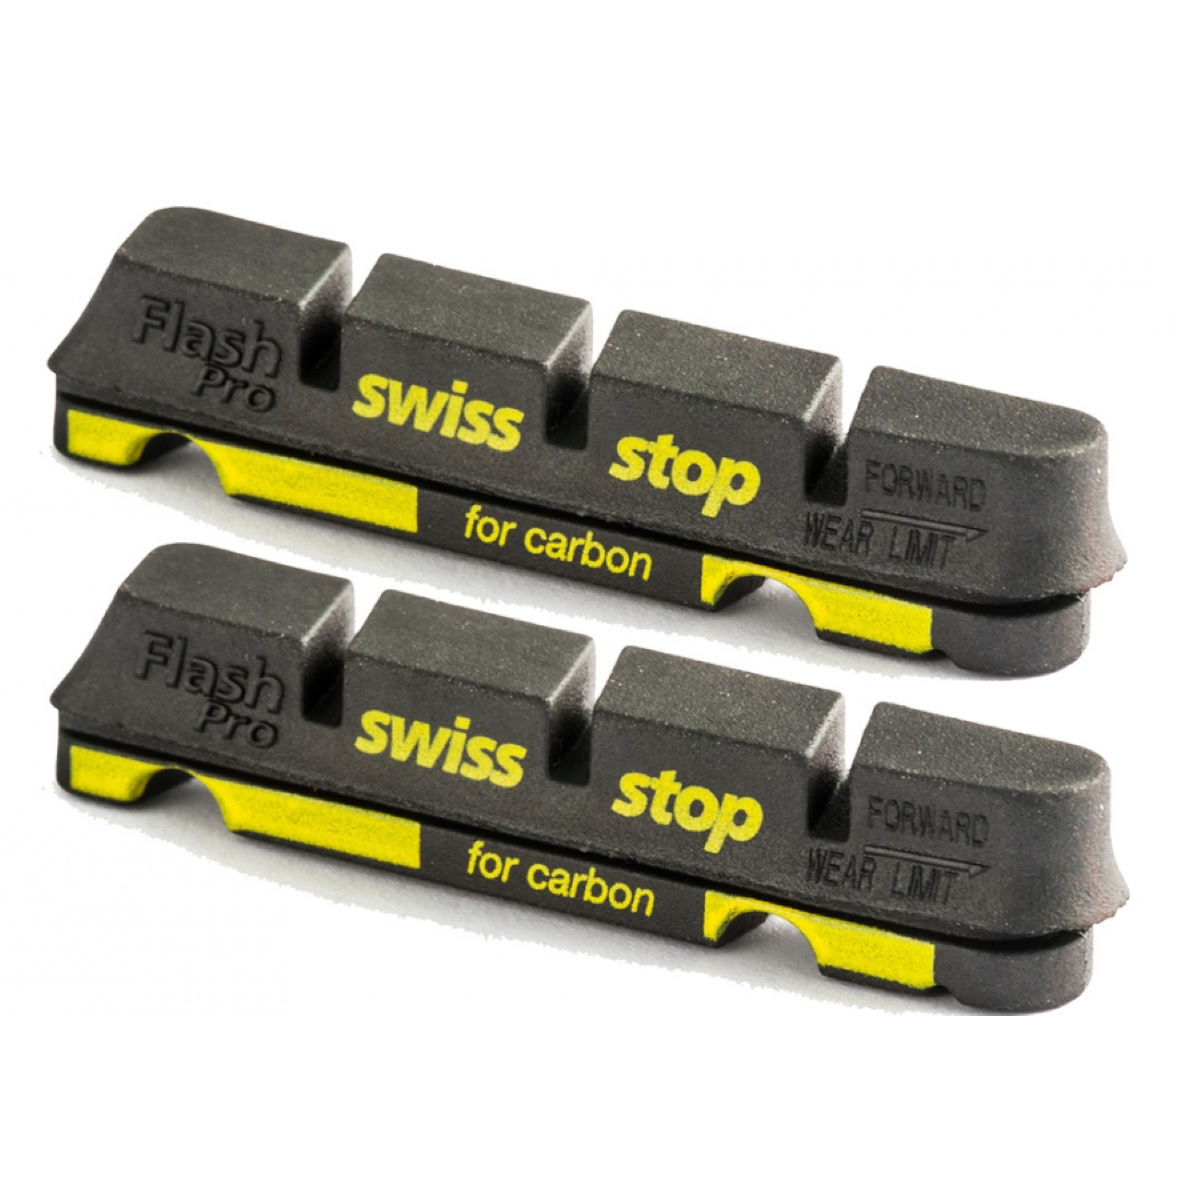 Patins de frein Swissstop Flash Pro Black Prince (sur jante en carbone) - One Size Noir Patins V-brake